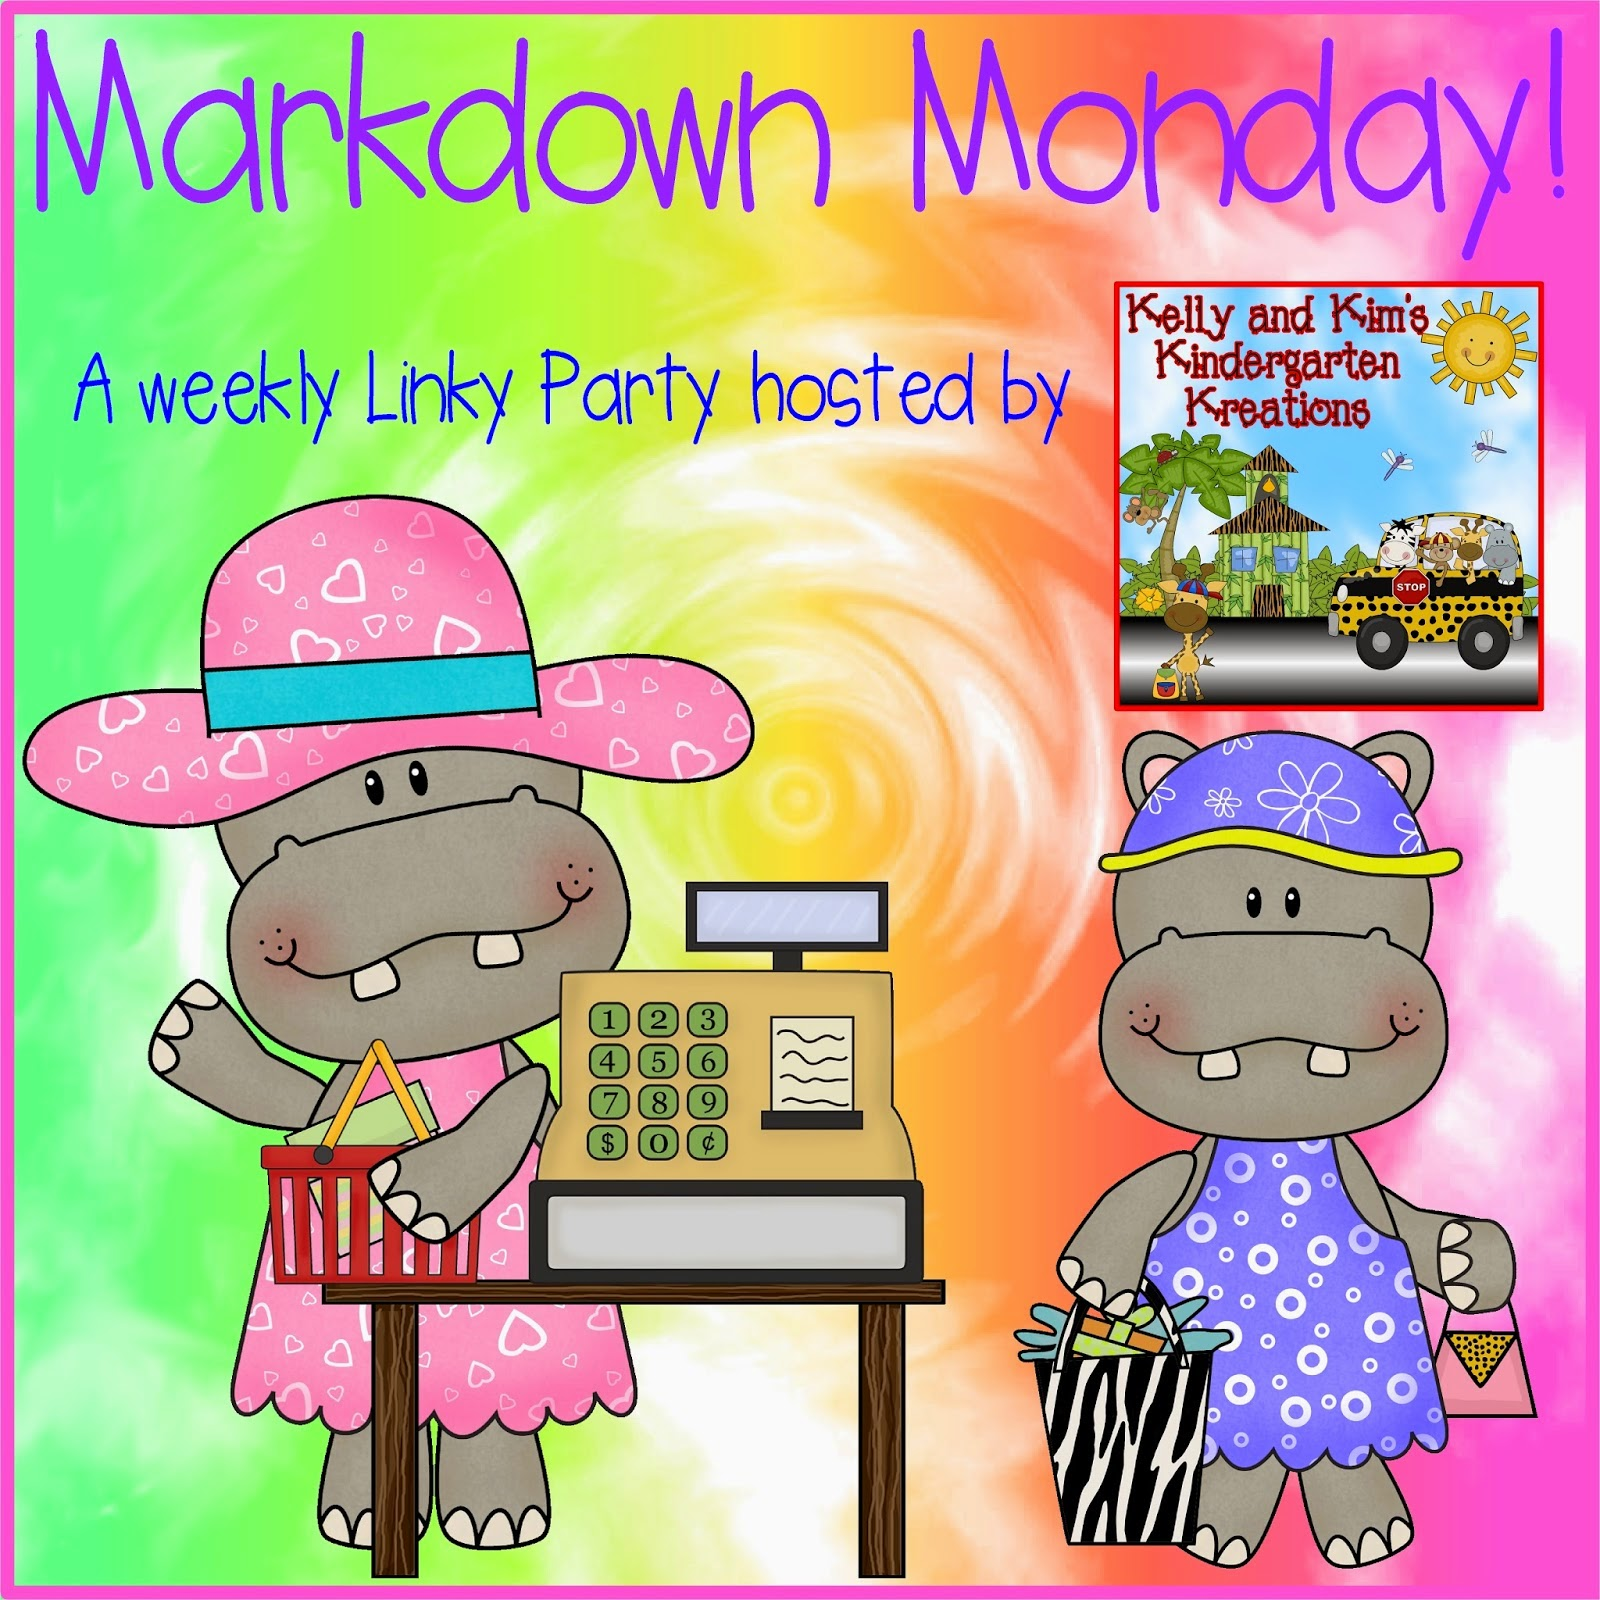 http://kellyandkimskindergarten.blogspot.com/2014/10/markdown-monday-linky-party-october_19.html